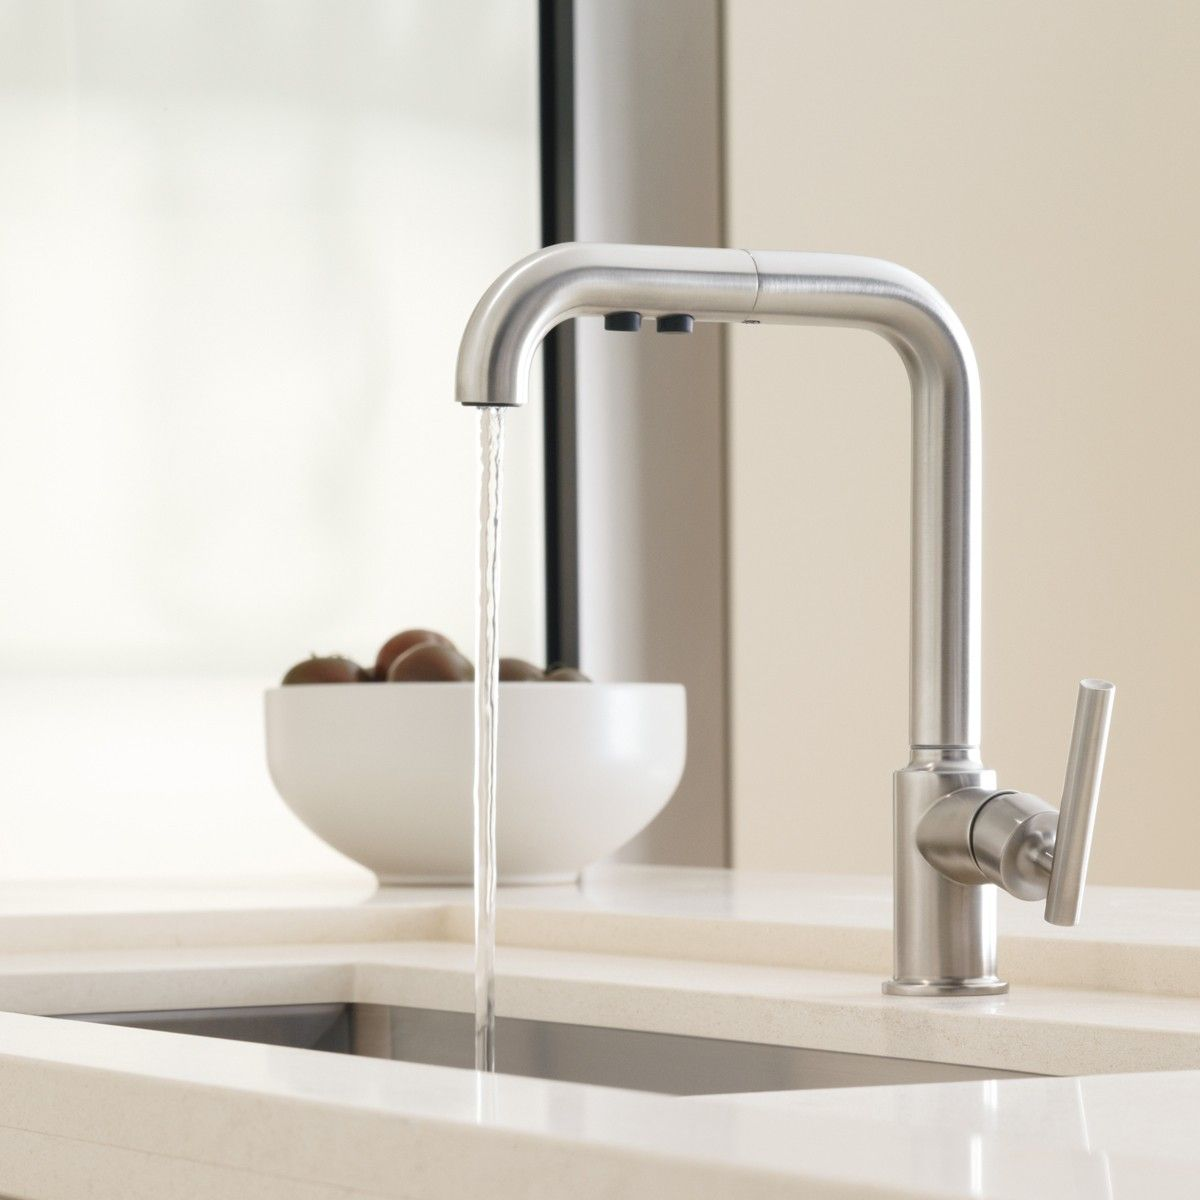 Kohler Pull Out Kitchen Faucet Part - 35: Quick Kitchen Upgrades For The New Year. Pull Out Kitchen FaucetKitchen ...